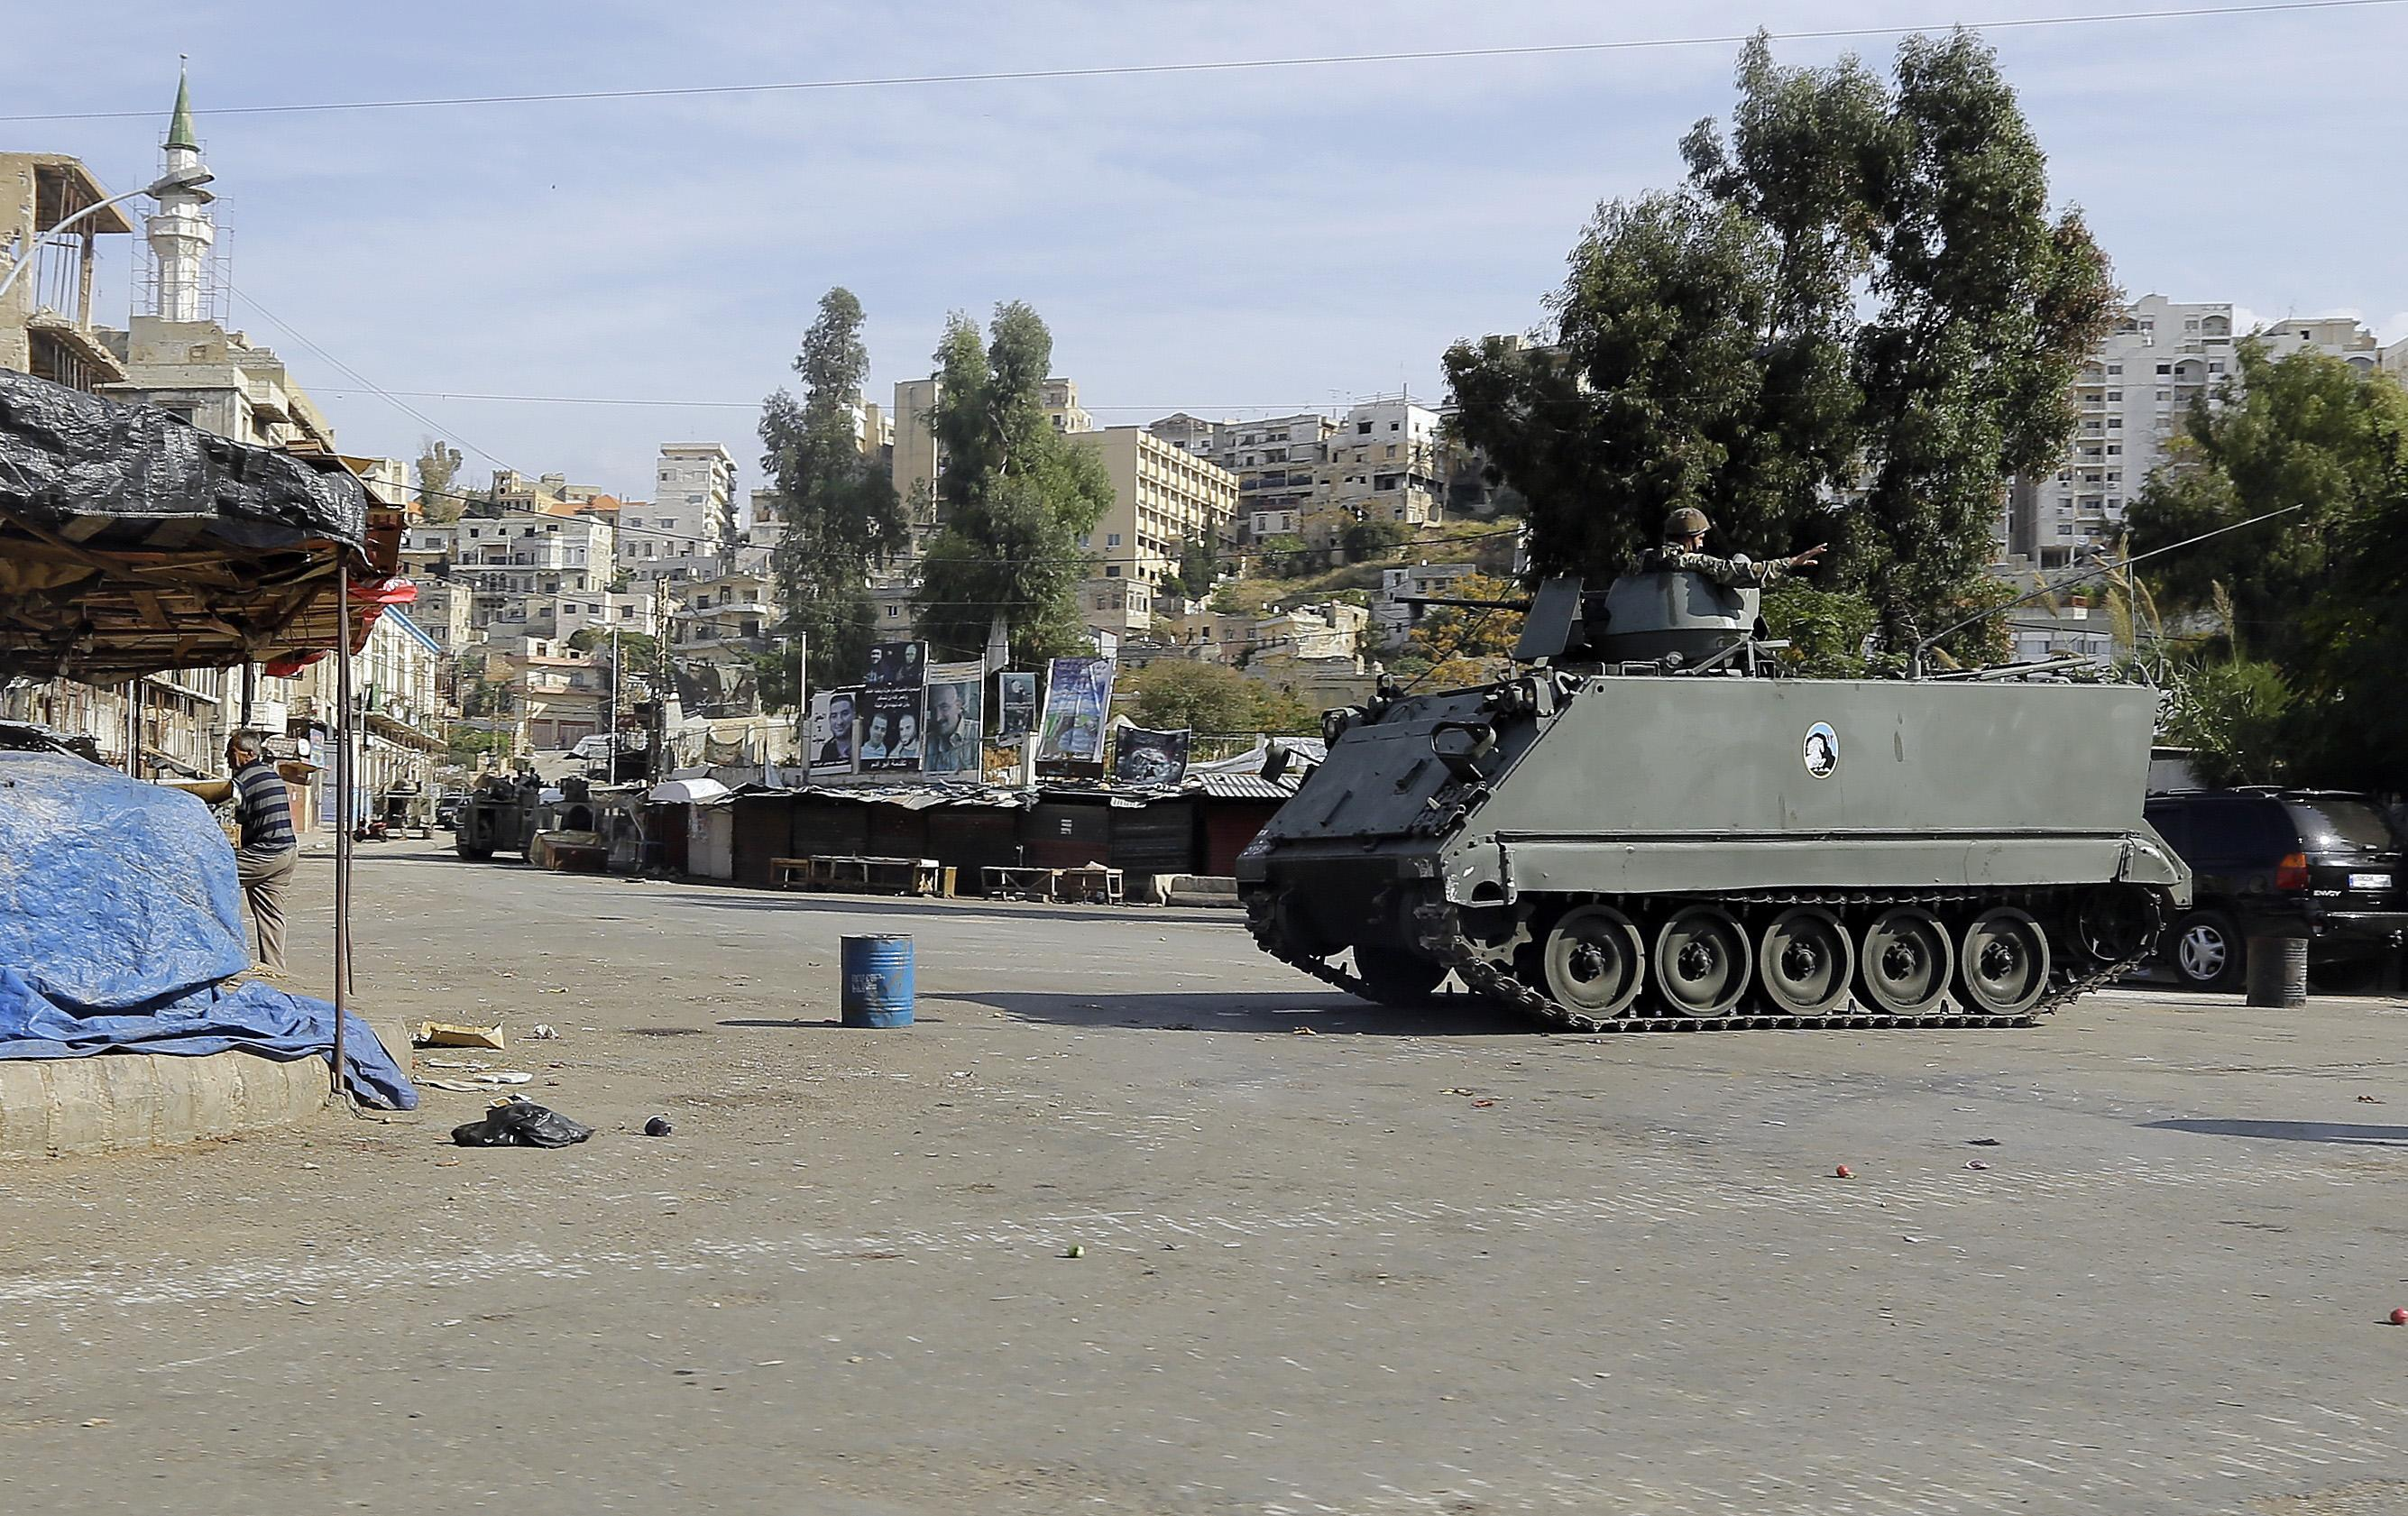 Lebanese soldiers were recently involved in fierce clashes with jihadists for control of the Bab al-Tabbaneh neighbourhood of Tripoli, on October 27, 2014 (AFP Photo/Joseph Eid)